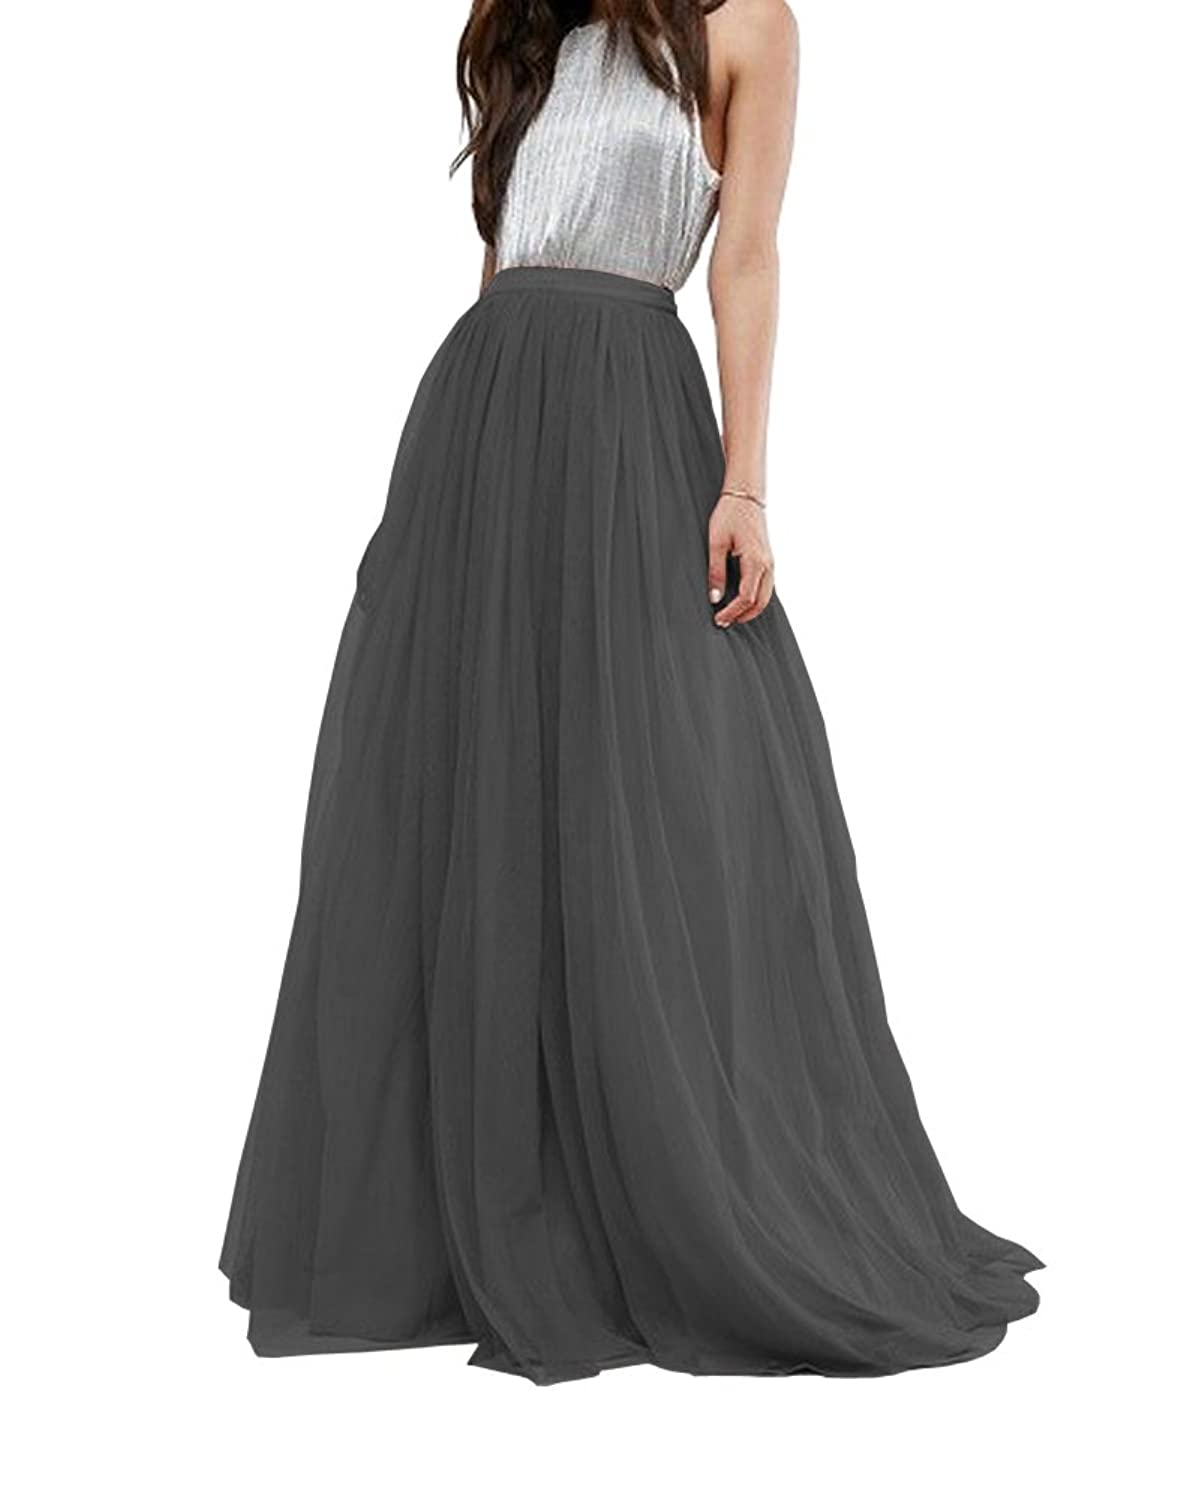 221d3ea9cf Top 10 wholesale Maternity Tulle Skirt - Chinabrands.com